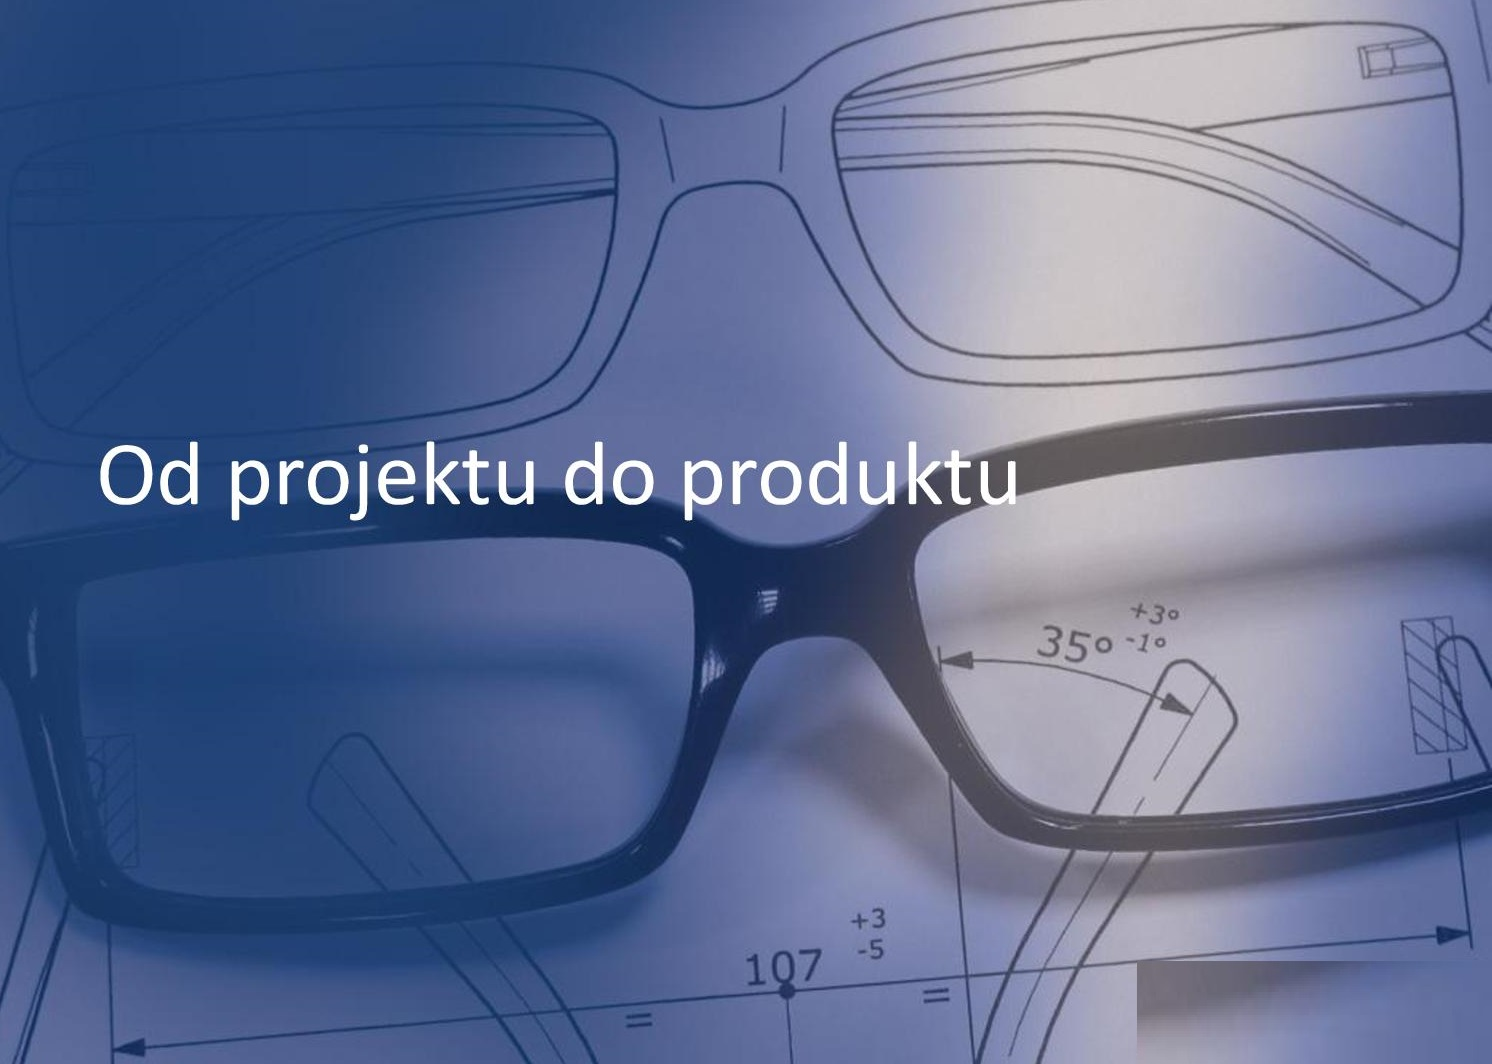 Ray-Ban. Od projektu do produktu